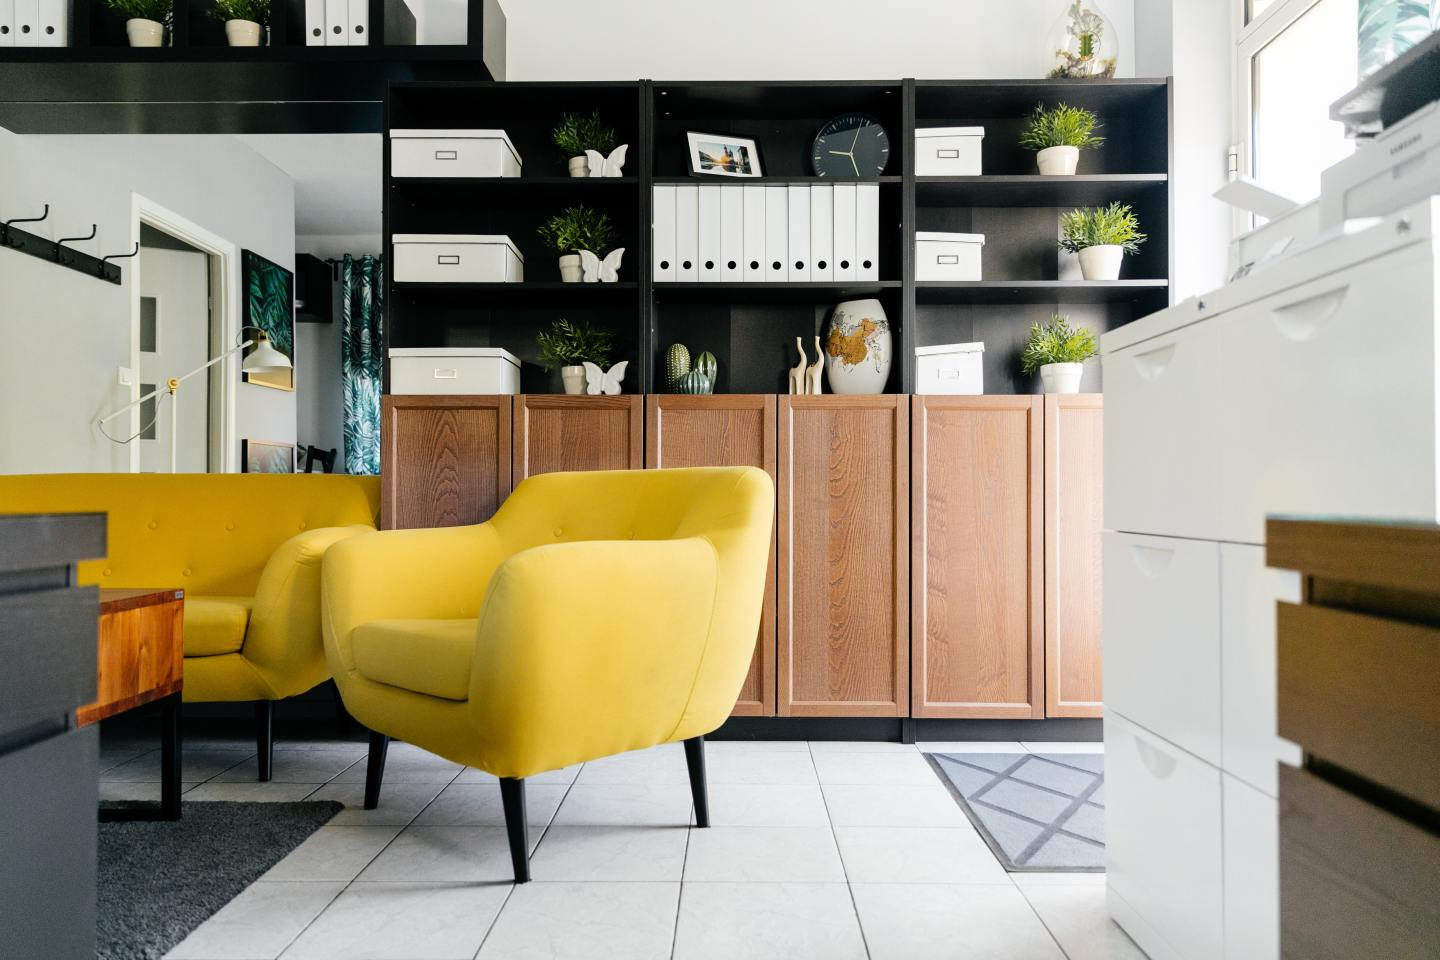 4 Reasons to Hire an Interior Designer When Moving Into New Space